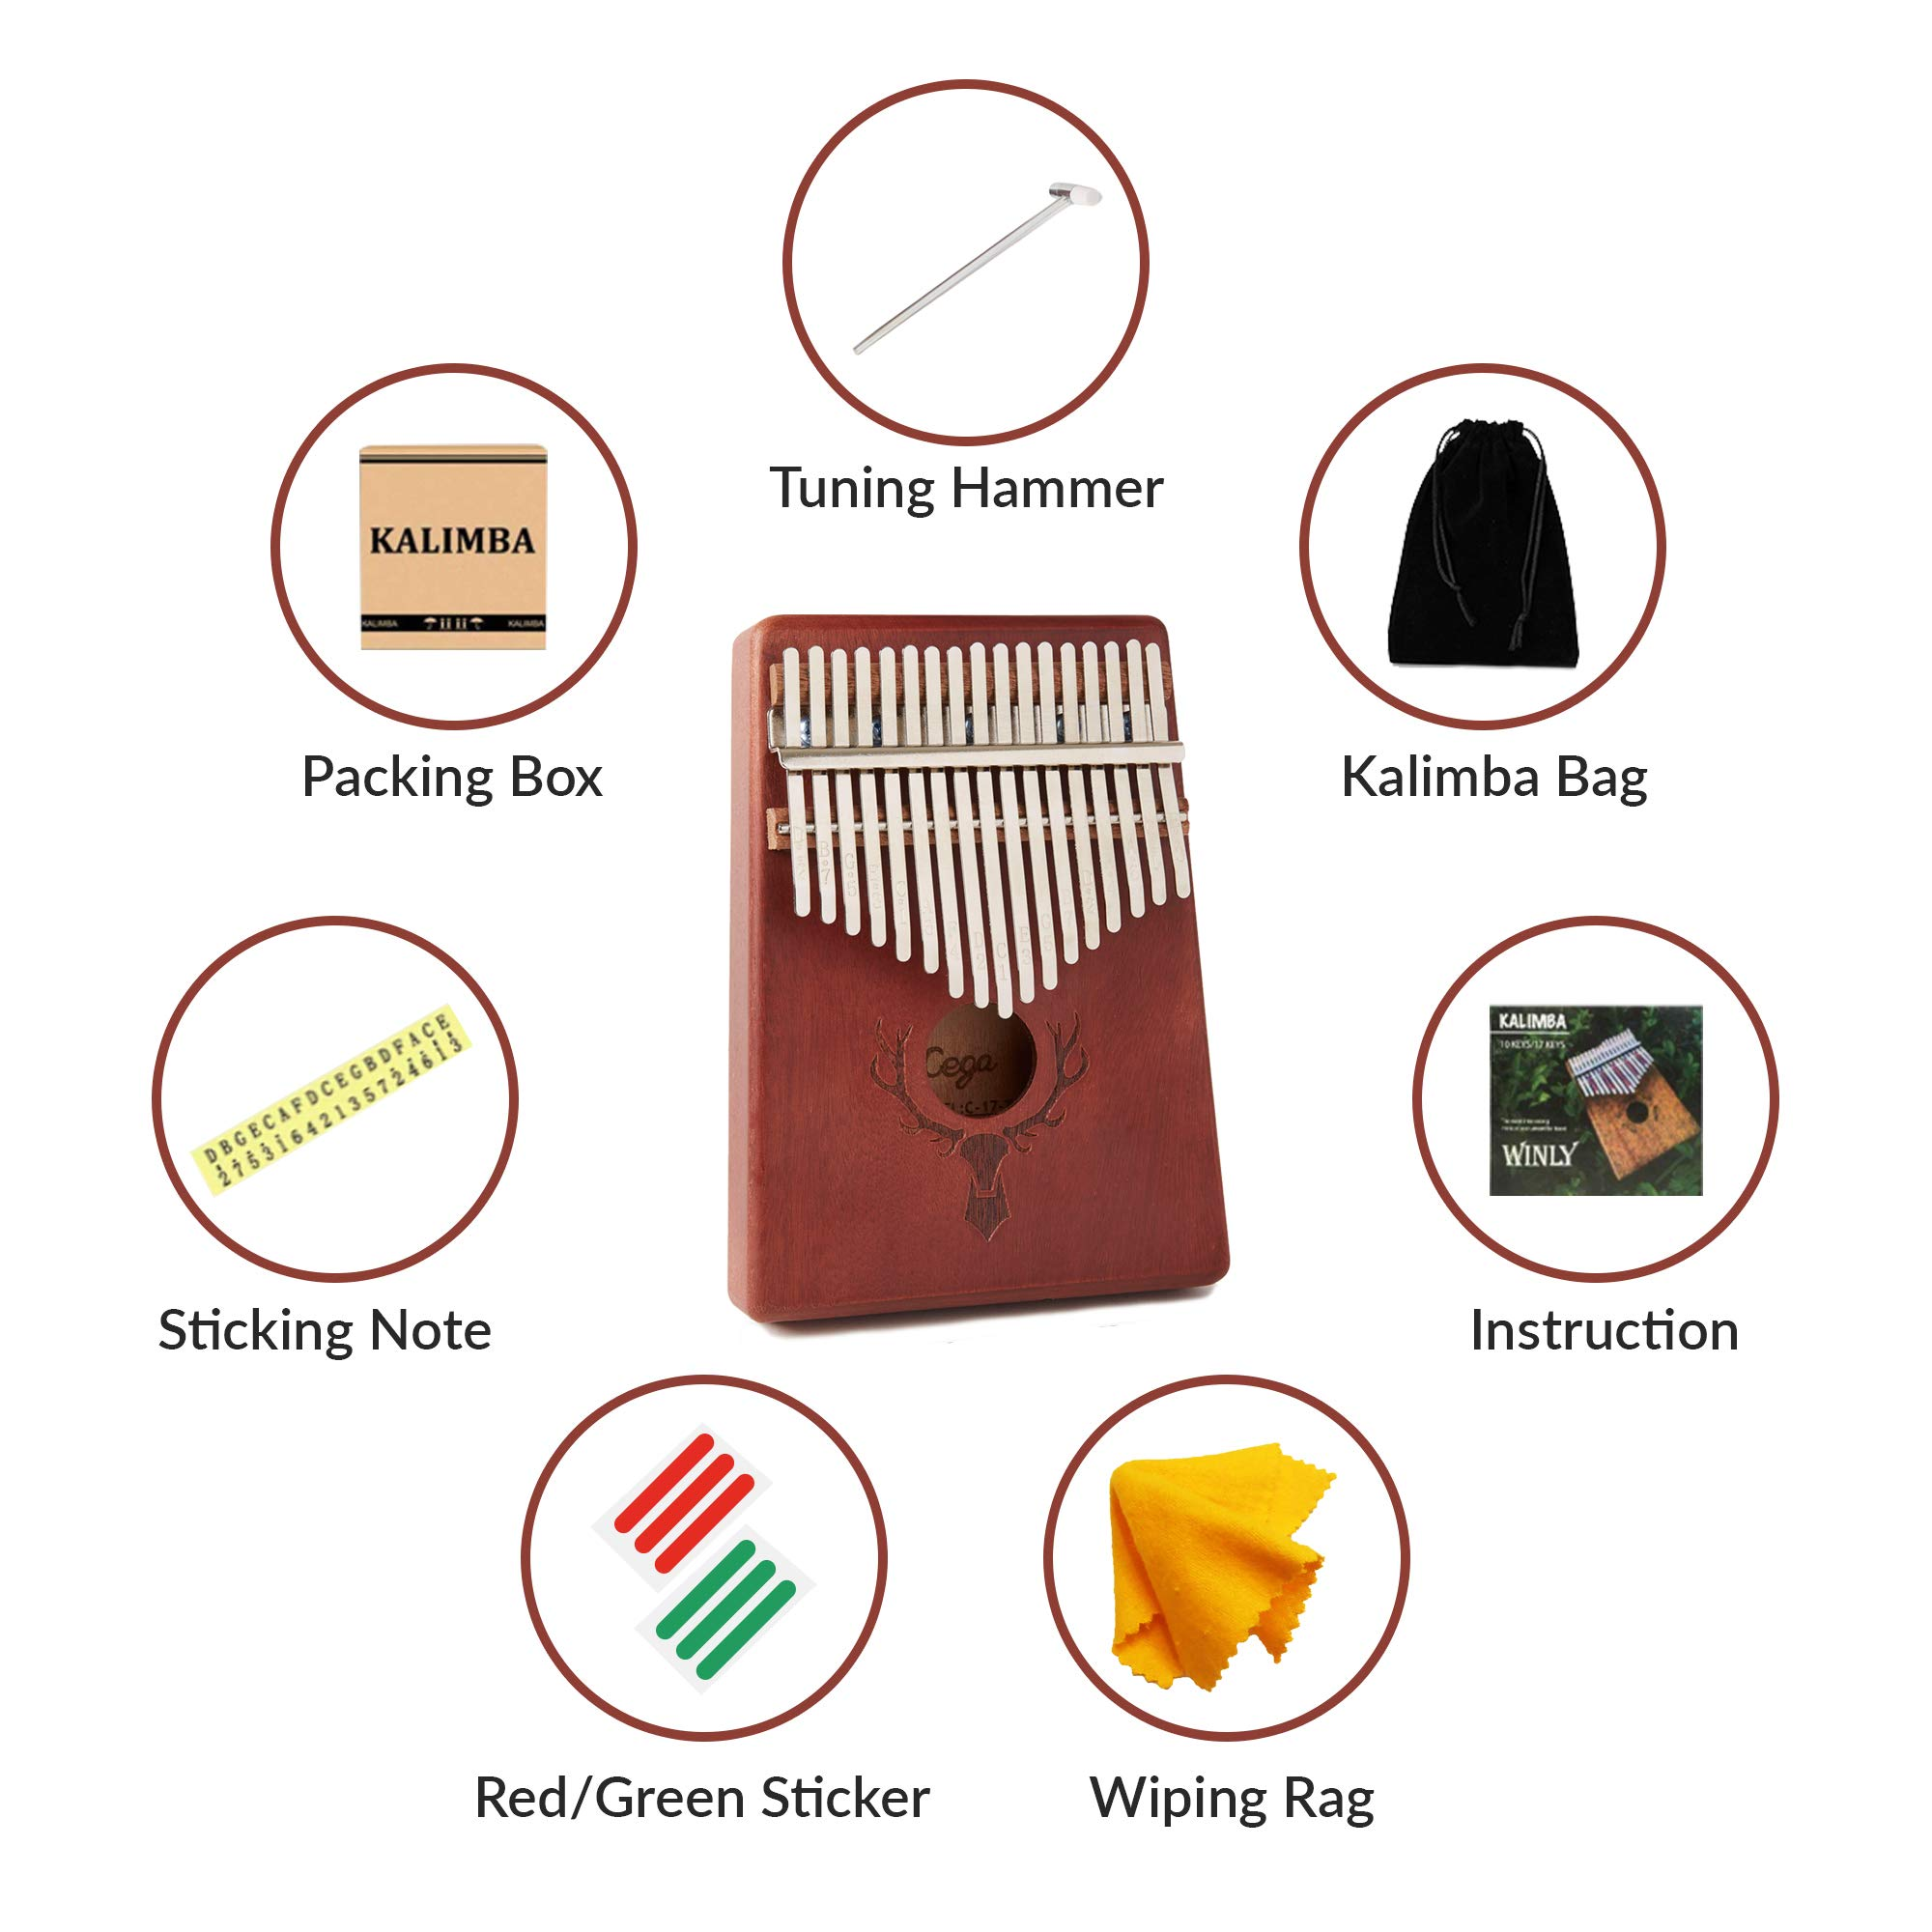 TimberTunes 17 Key Kalimba Thumb Finger Piano Therapy Musical Instrument for Adults Children, Solid Mahogany Wood, Engraved Elk Antler,Tuning Hammer and Music Book, Engraved Keys, Velvet Case, Unique by Timbertunes (Image #5)